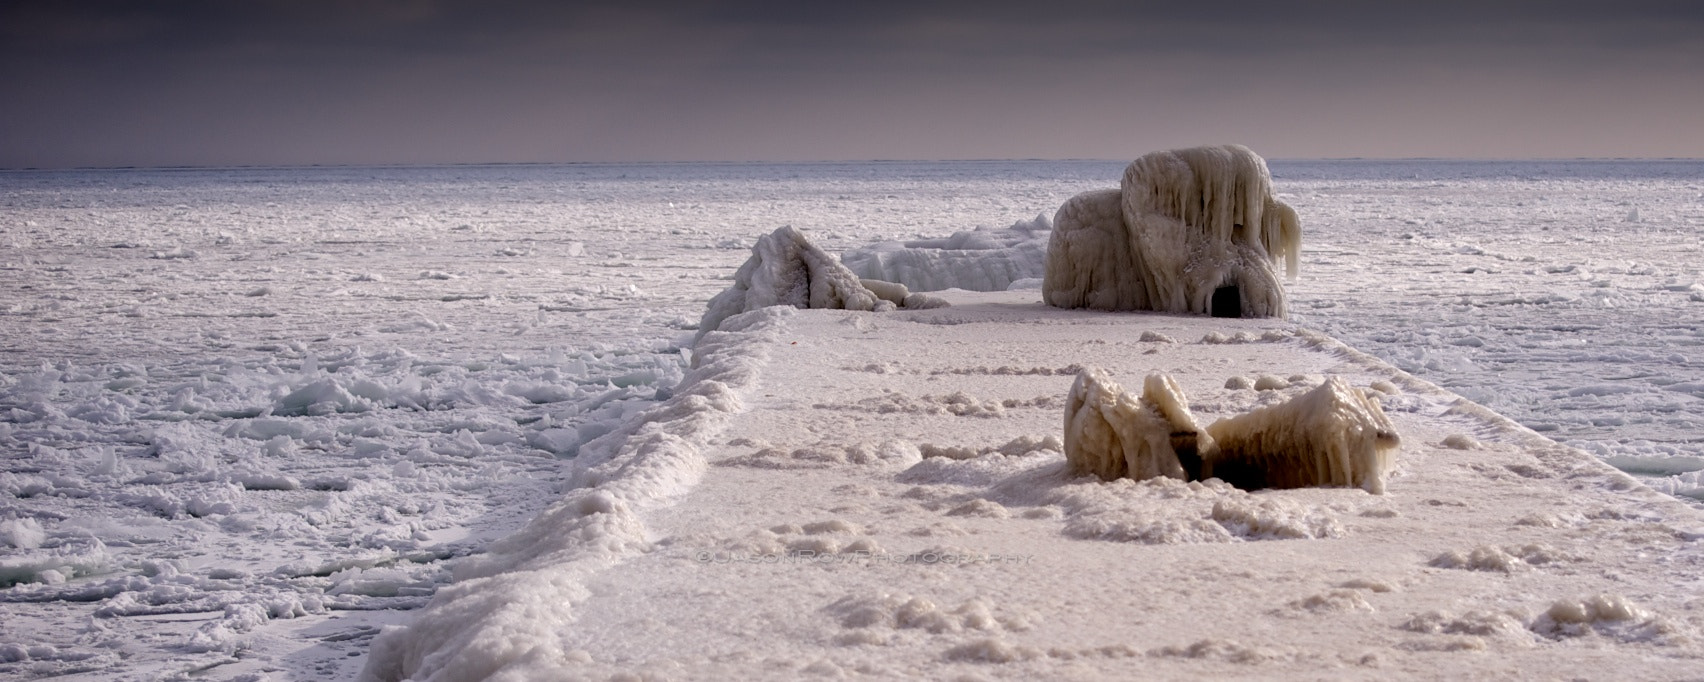 Photograph The Frozen Black Sea by Jason Row on 500px